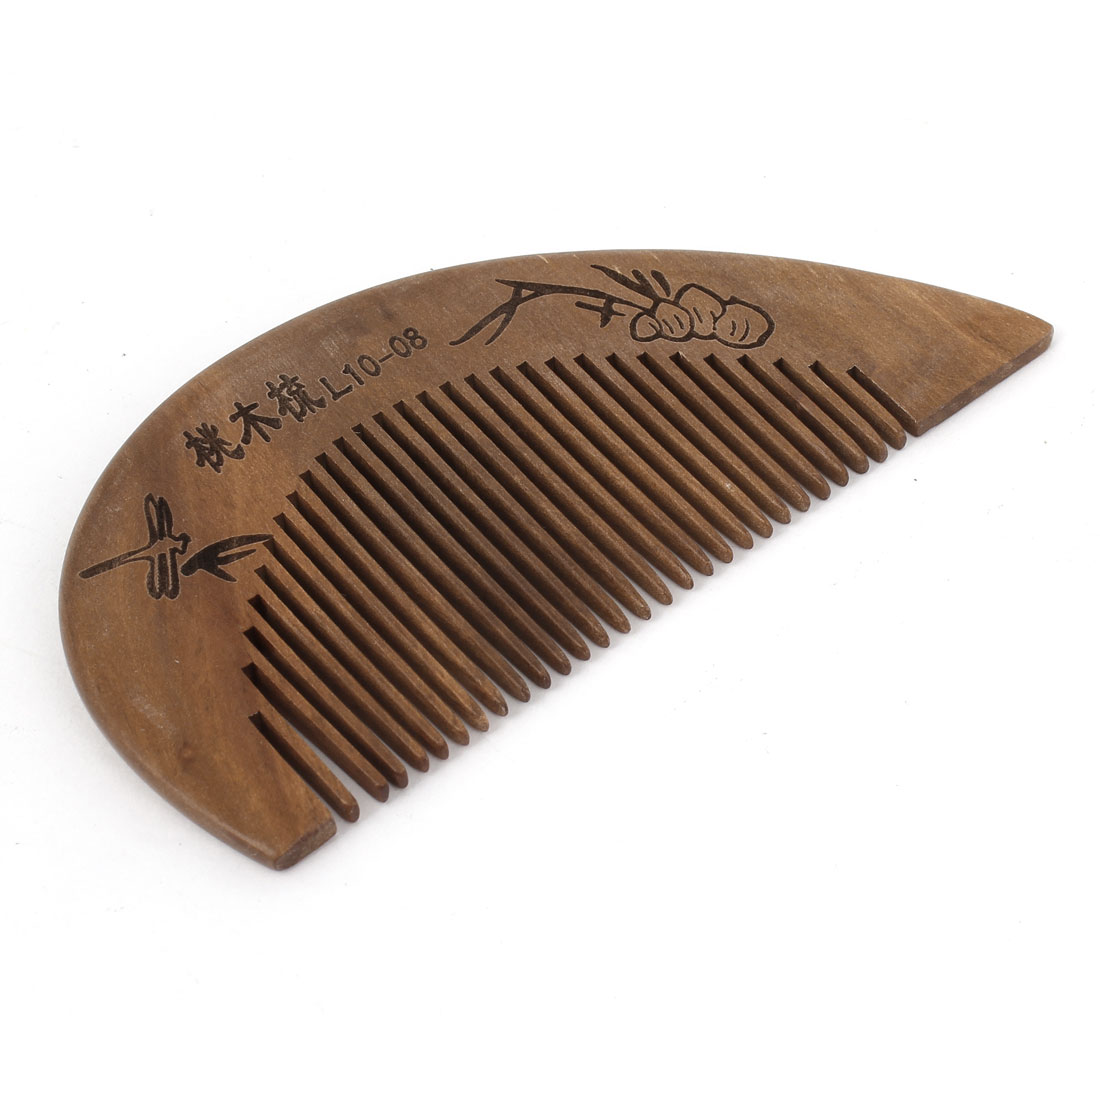 "4"" Length Handwork Carved Wood Hair Care Comb for Unisex - image 2 de 2"